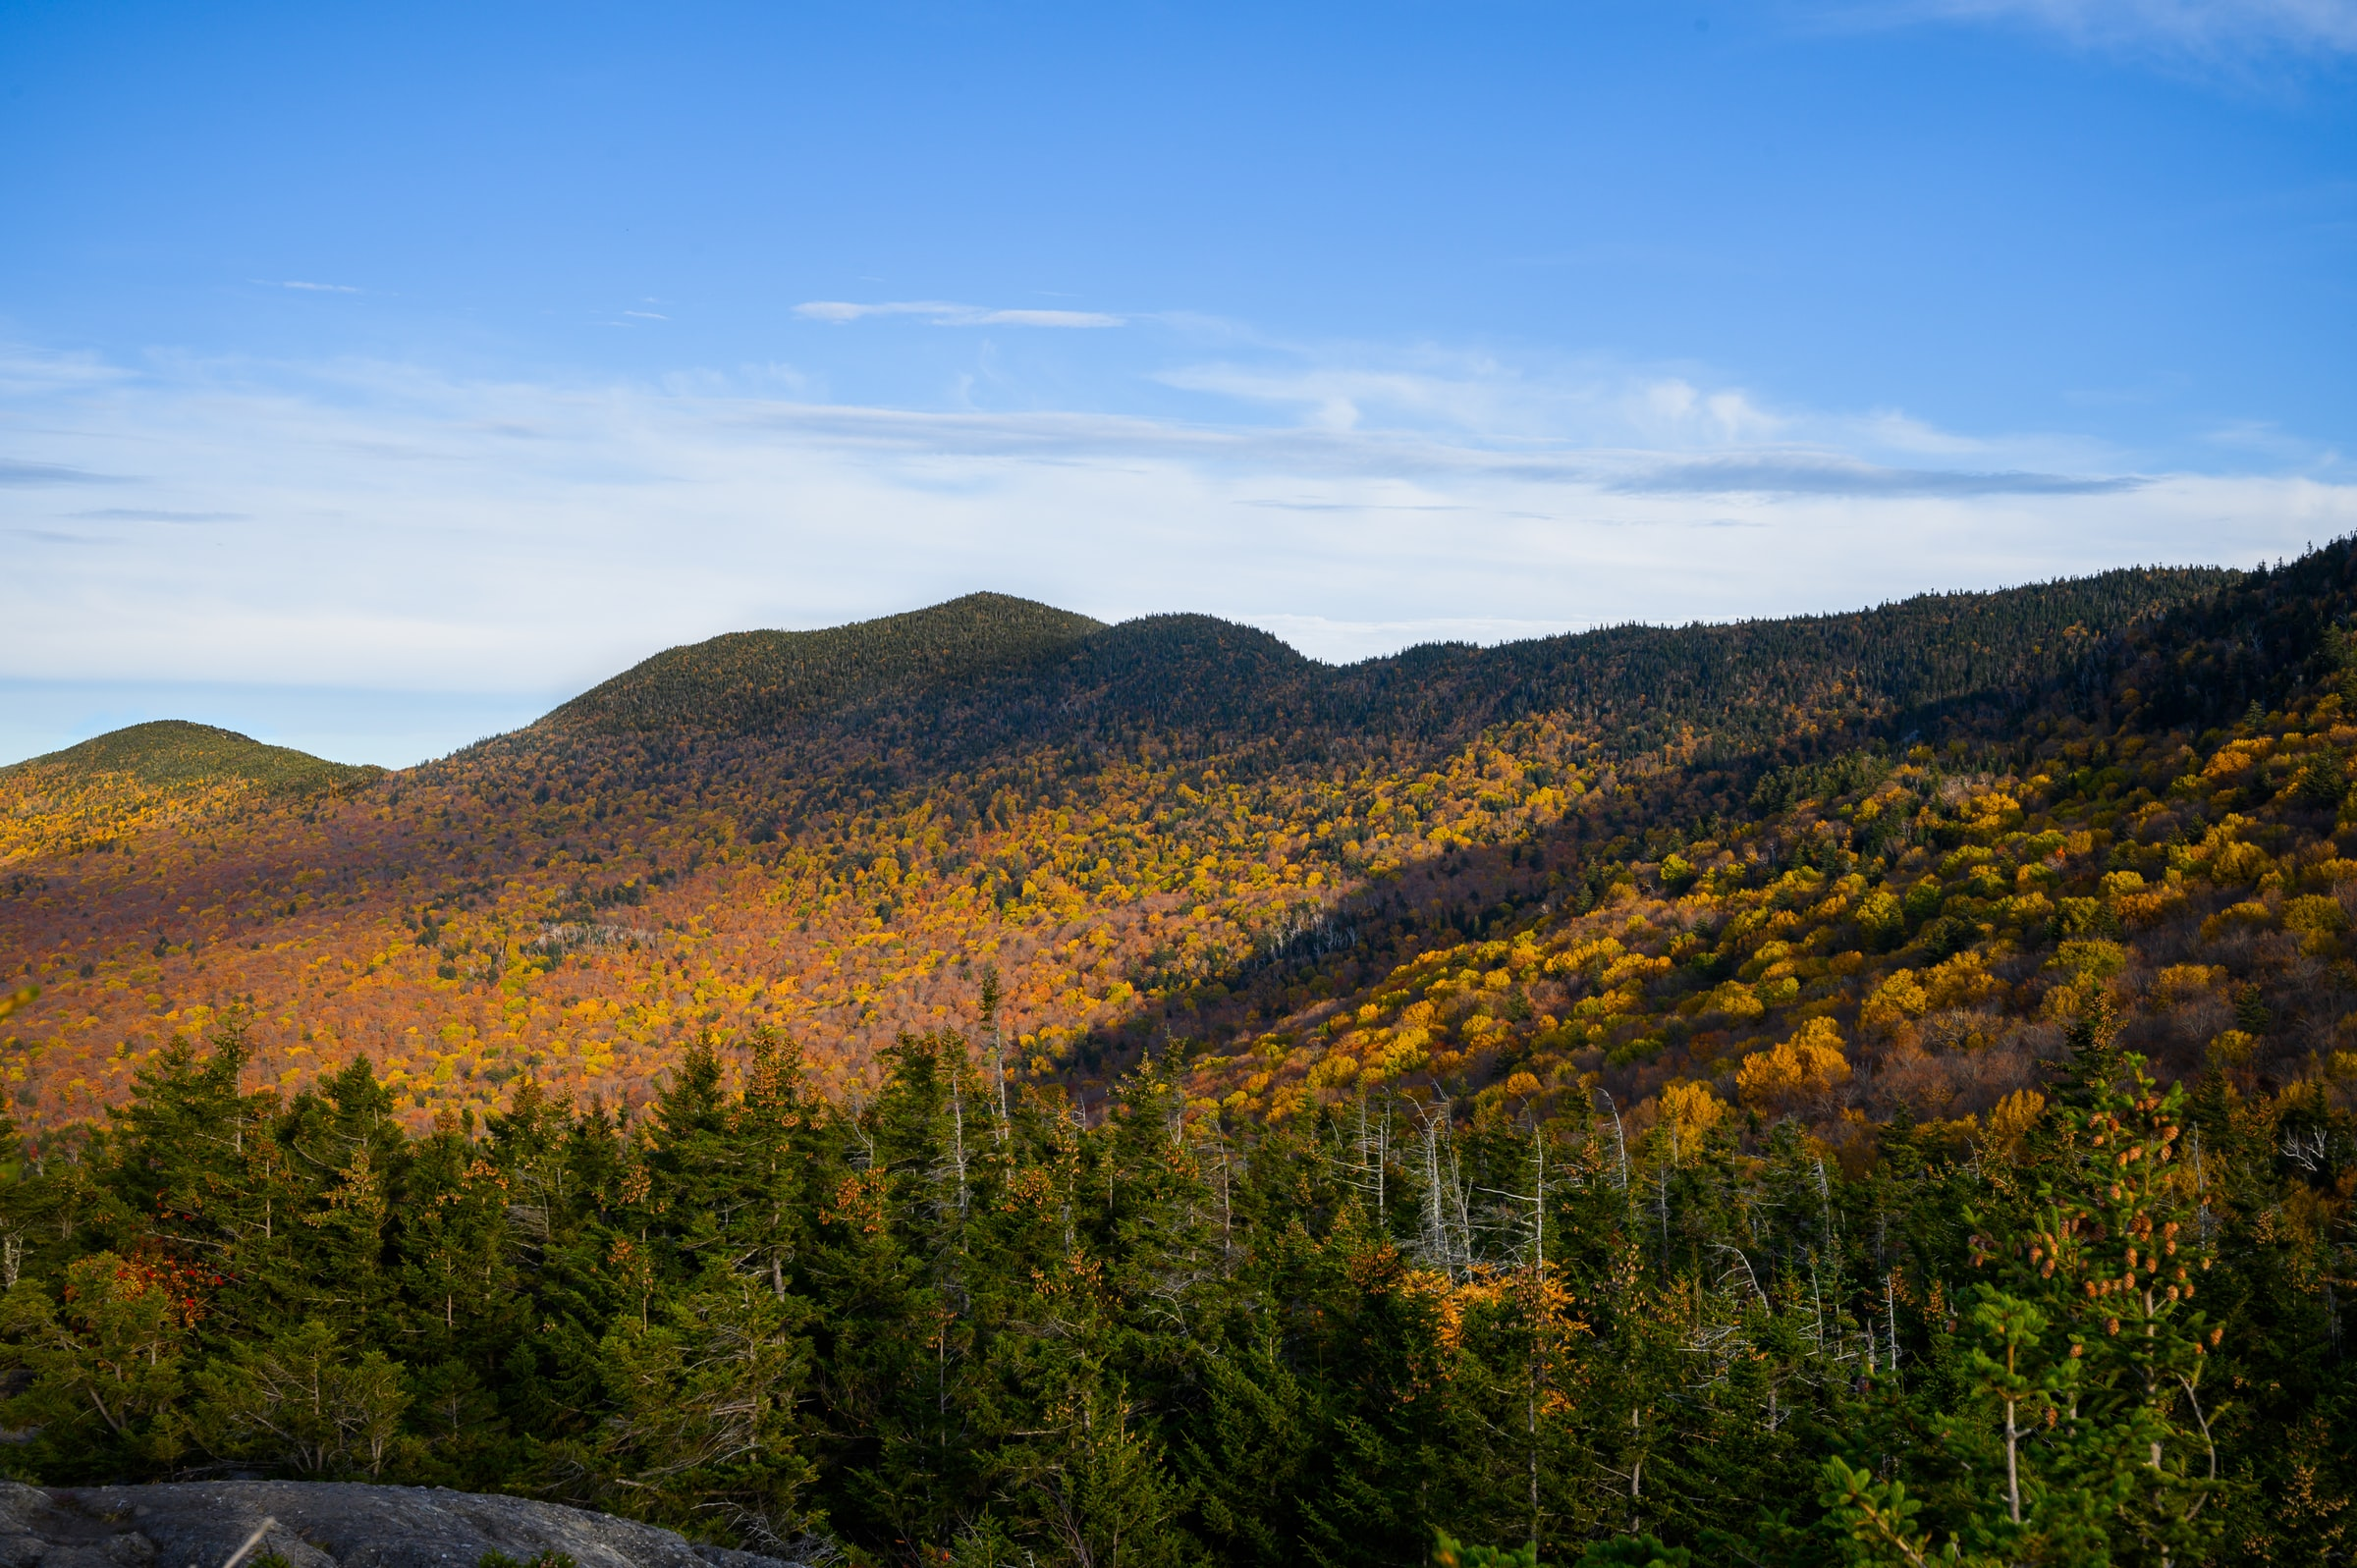 Vermont daytime sky over mountains with foliage.